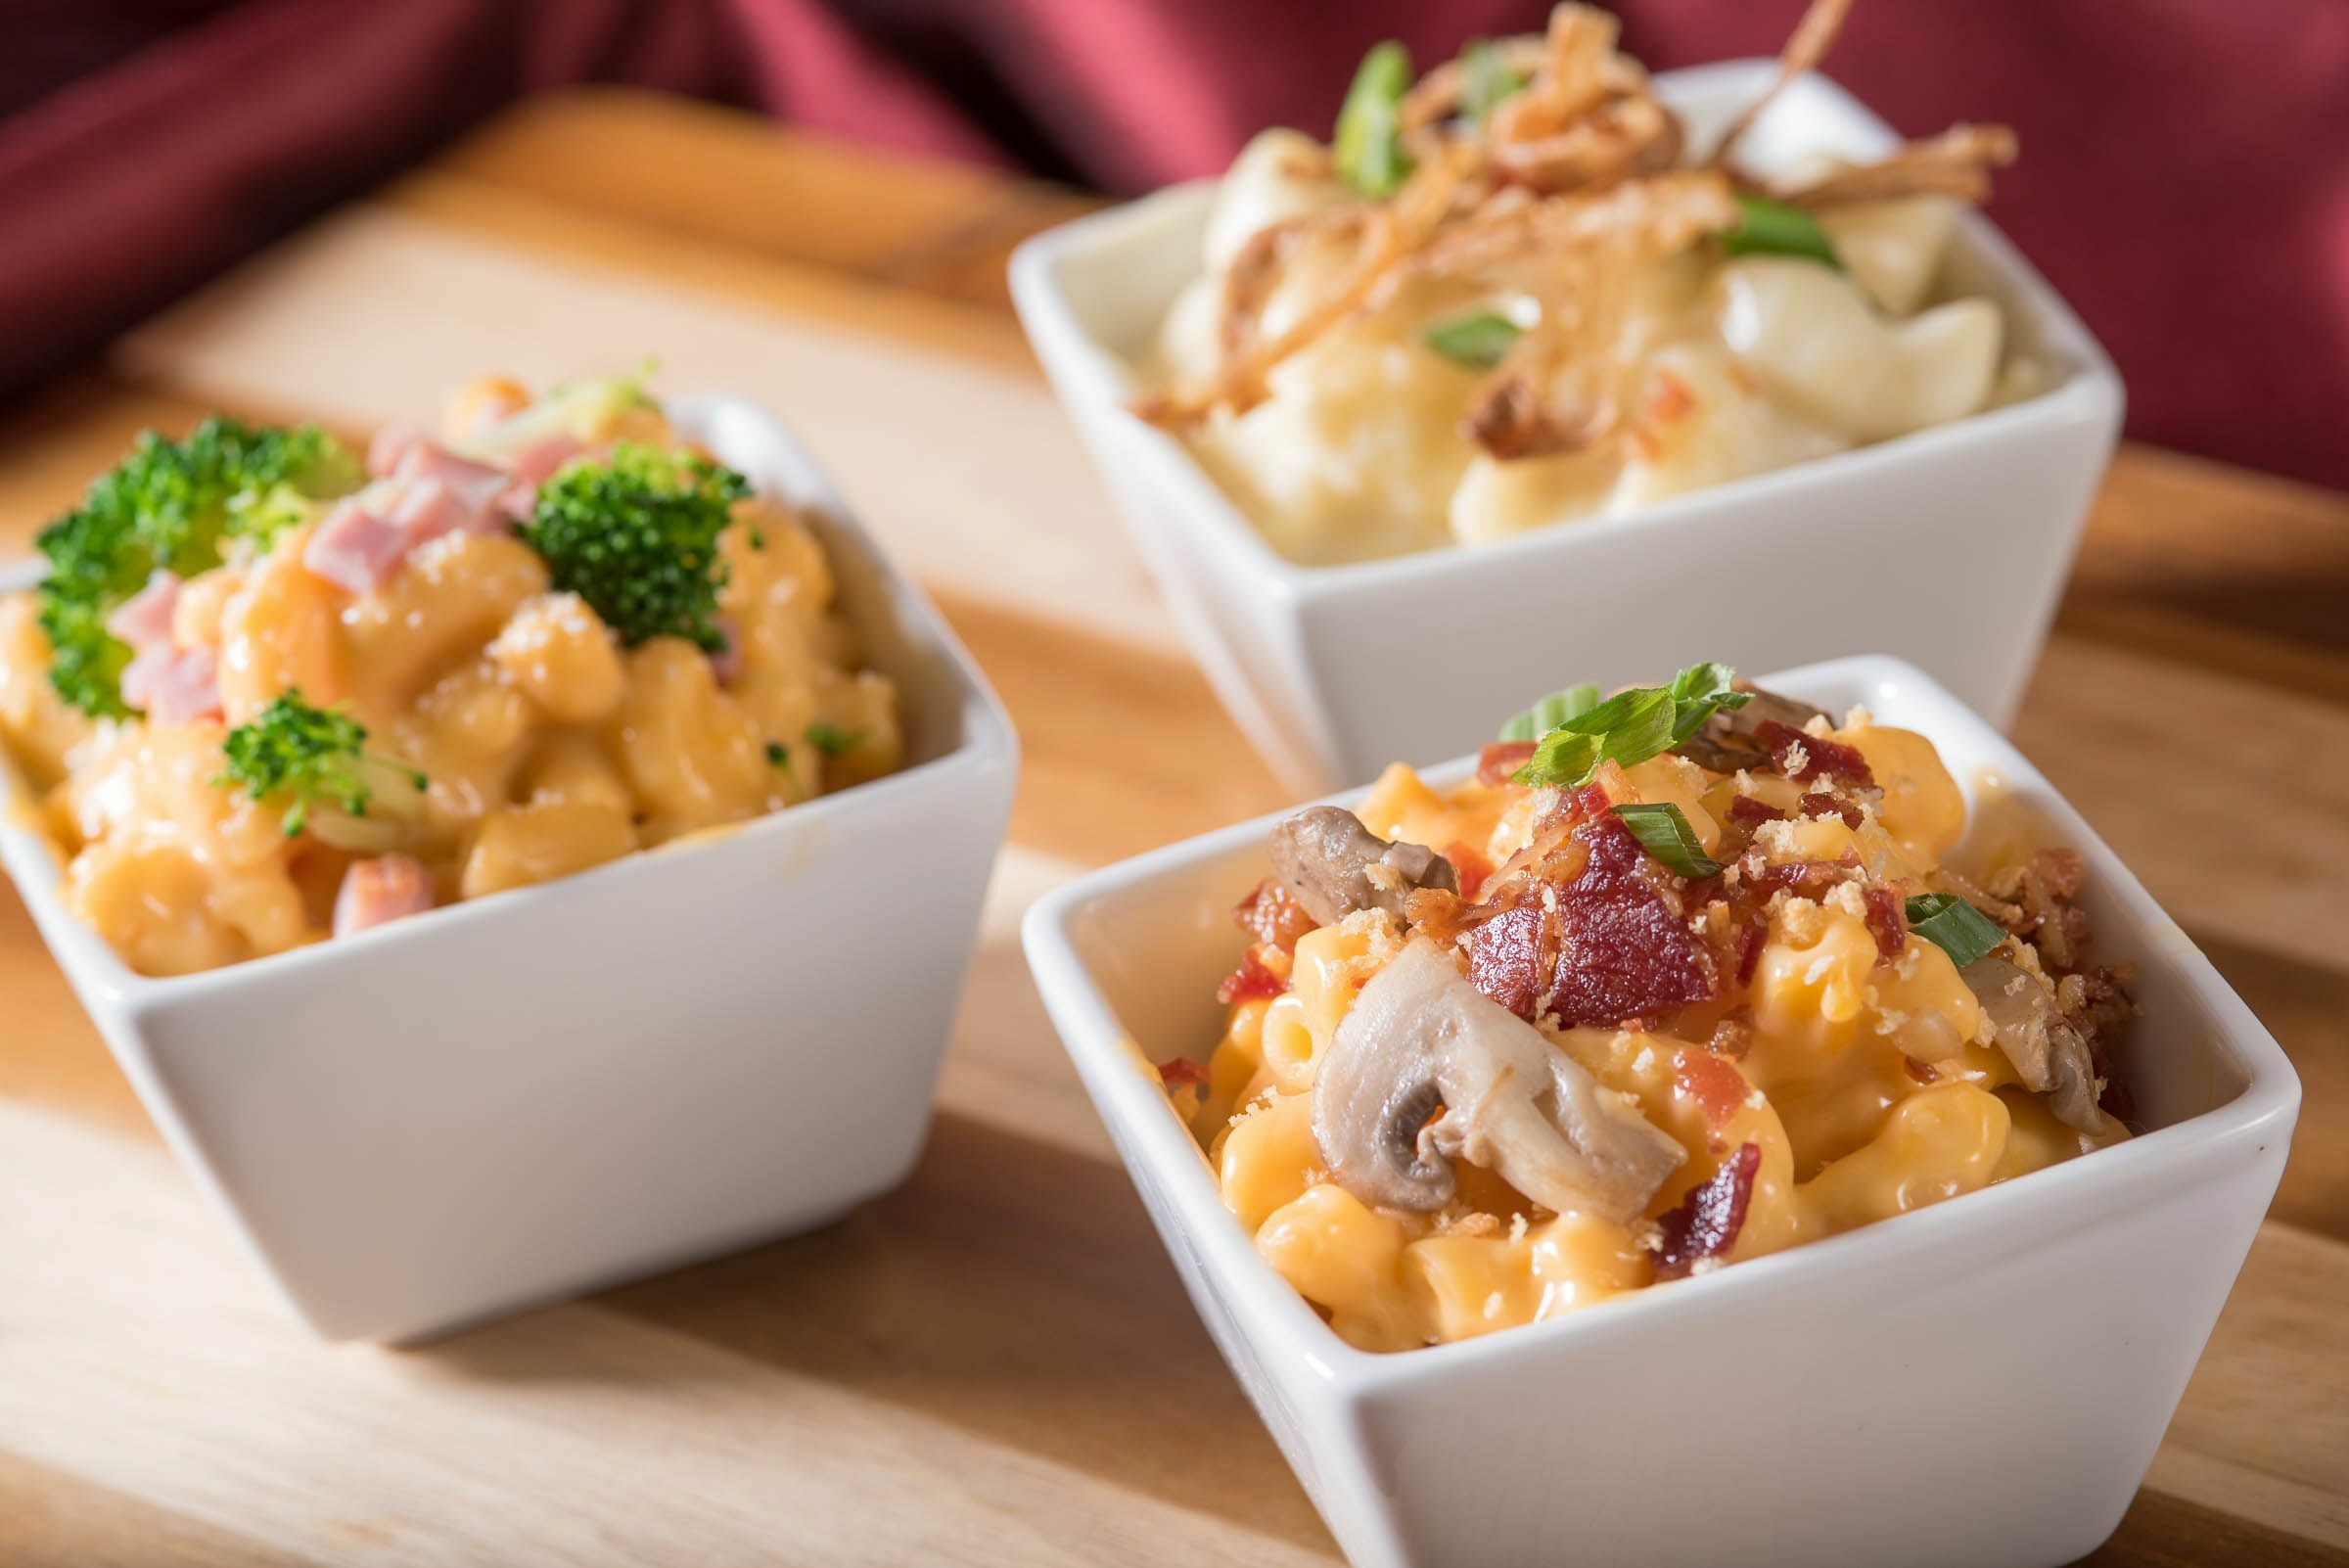 Whiskey Stories: Whiskey & Mac 'n' Cheese